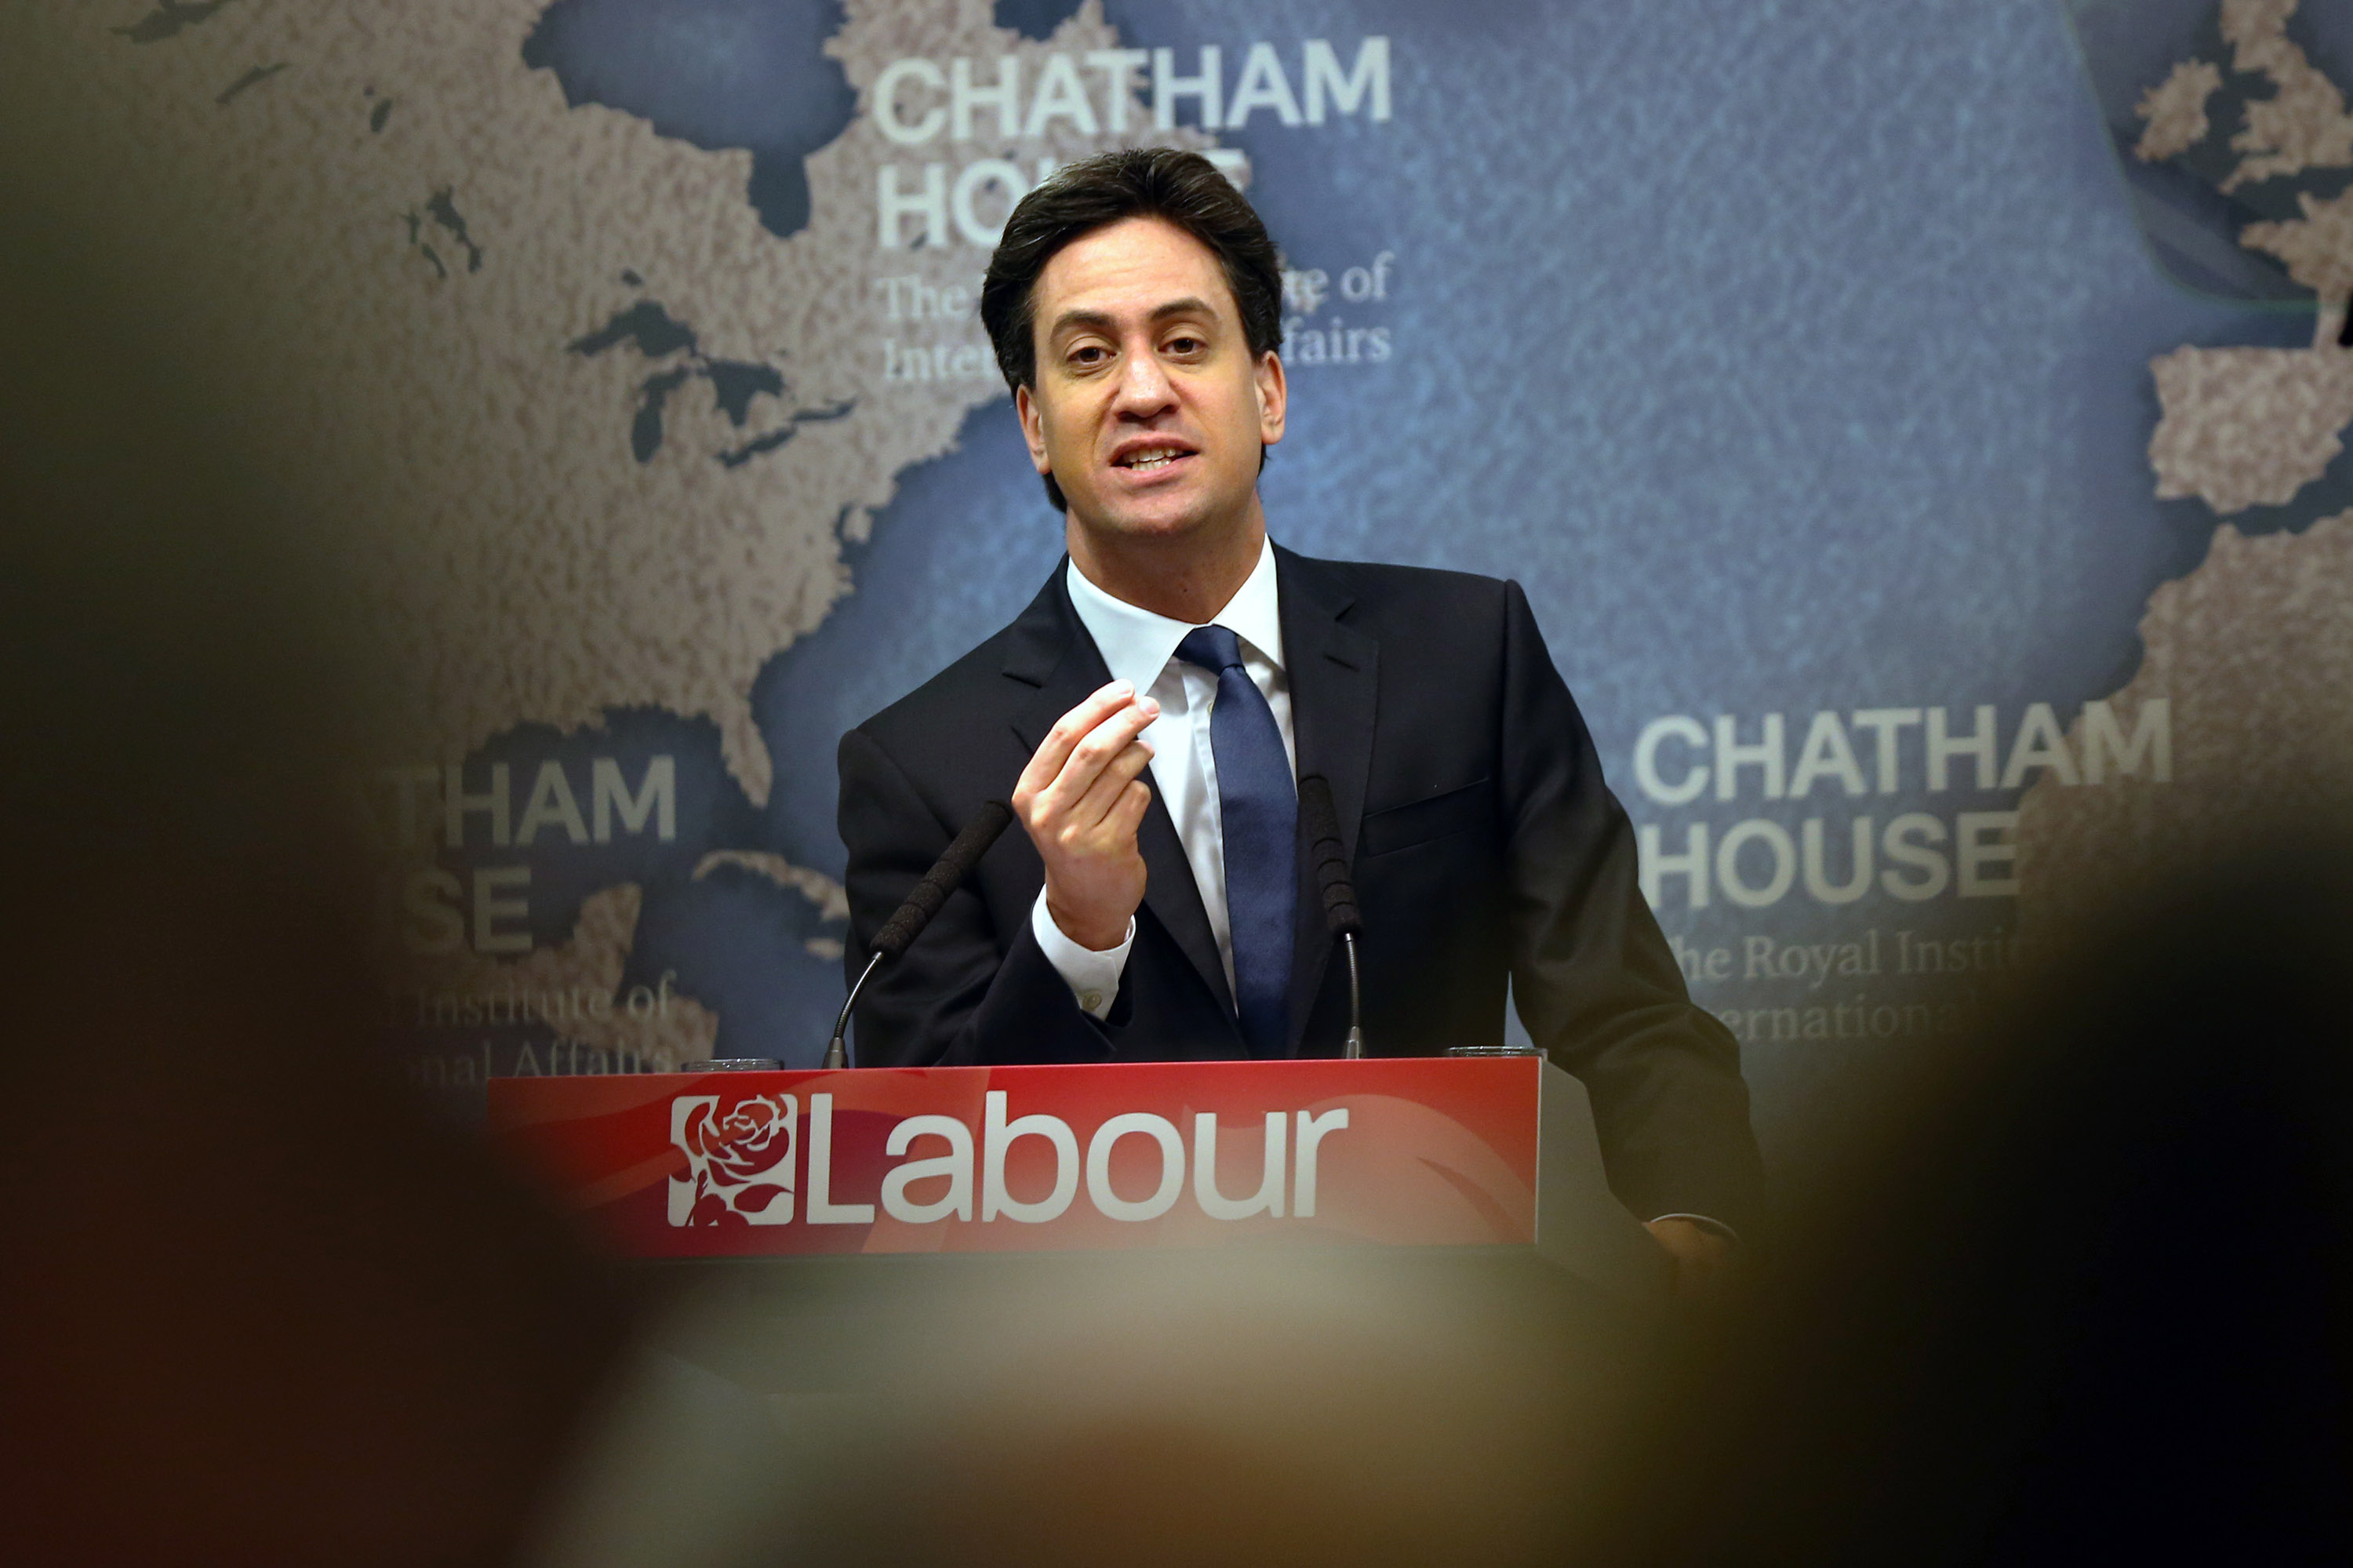 This is why Ed Miliband is likely to be soon to PM.